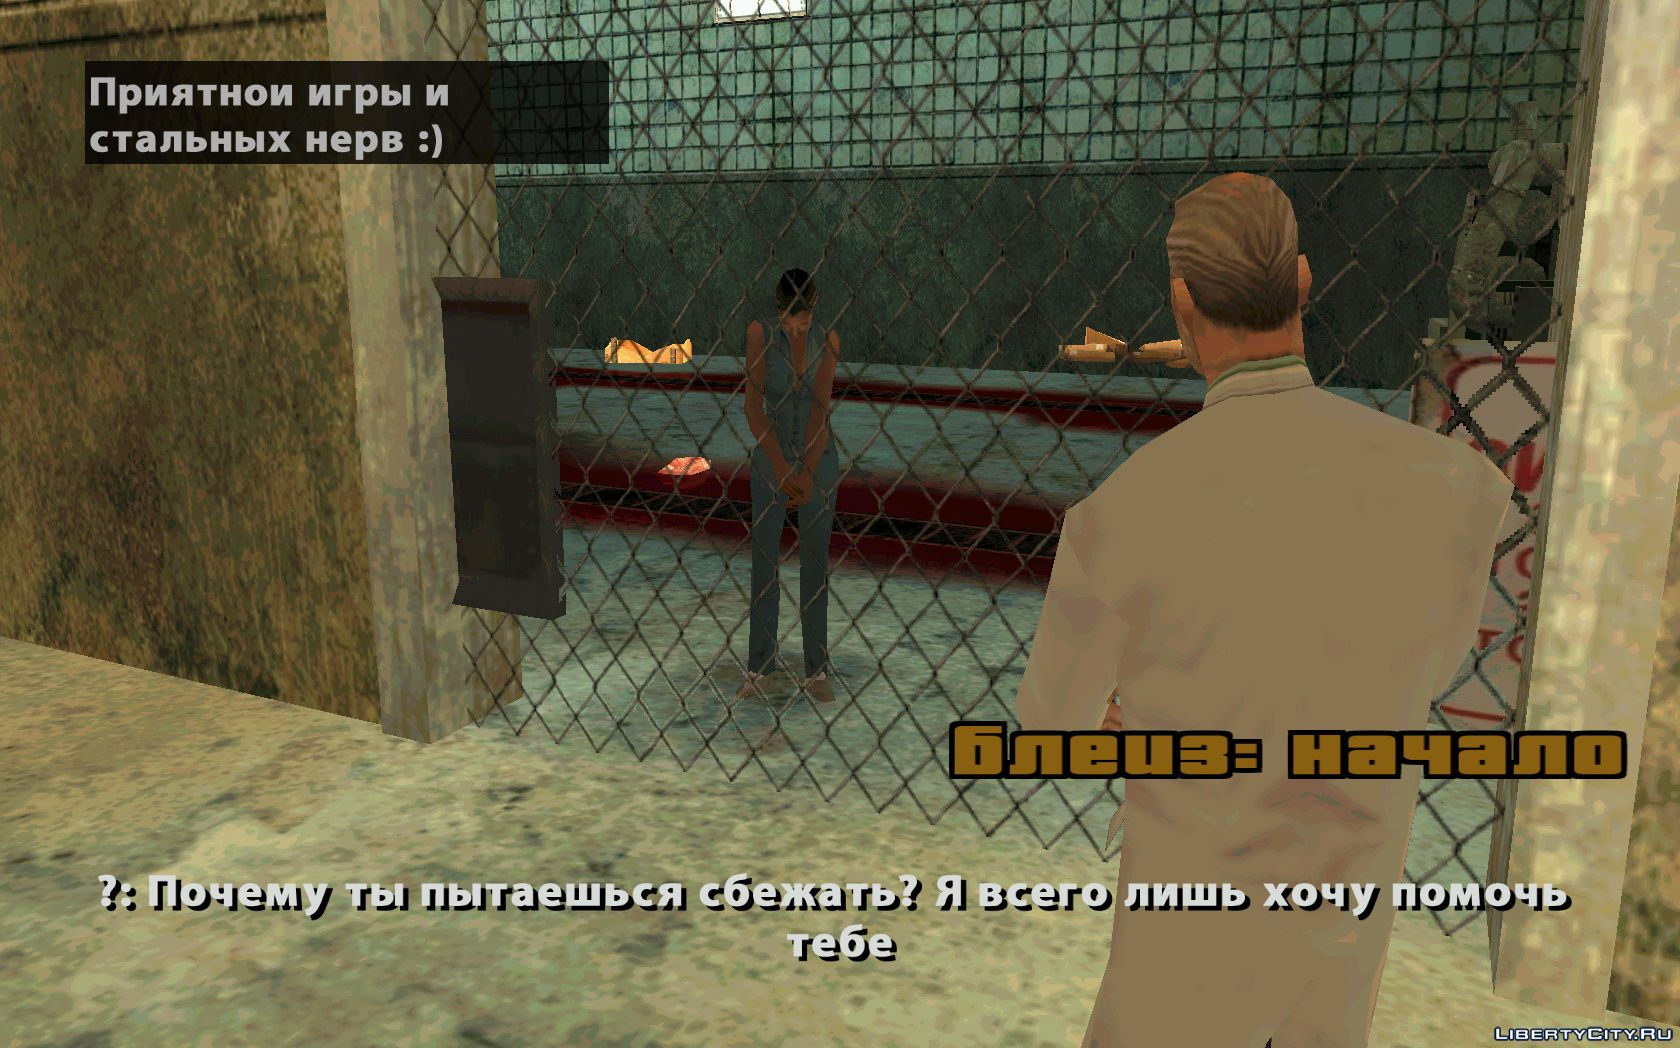 New missions for GTA San Andreas: 2693 new mission for GTA